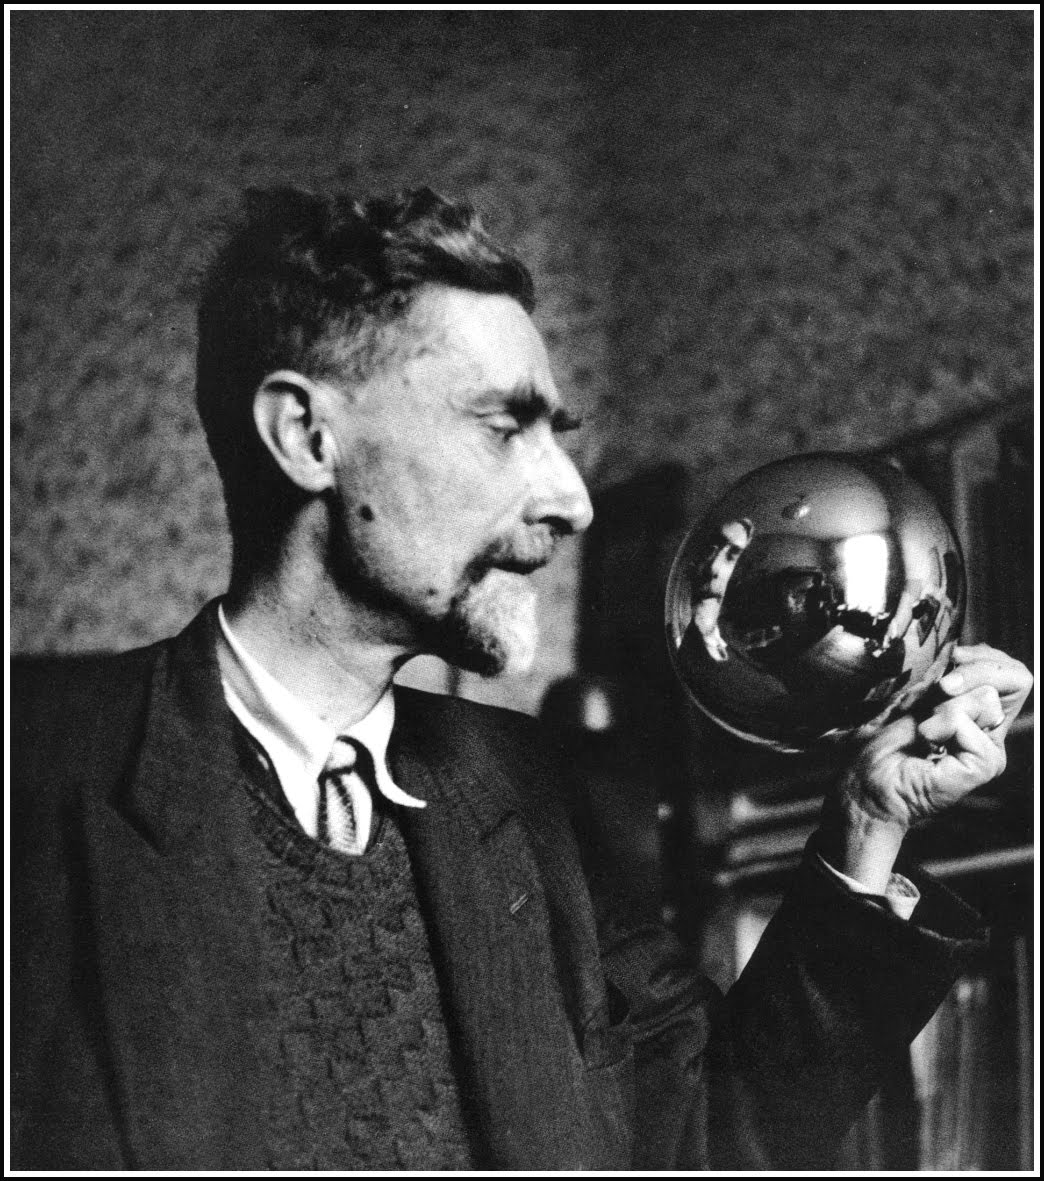 a biography of maurits cornelis mc escher in the dutch province of friesland Maurits cornelis escher was born on june 17, 1898, in leeuwarden, friesland, as the youngest son of civil engineer george arnold escher and sara gleichman.